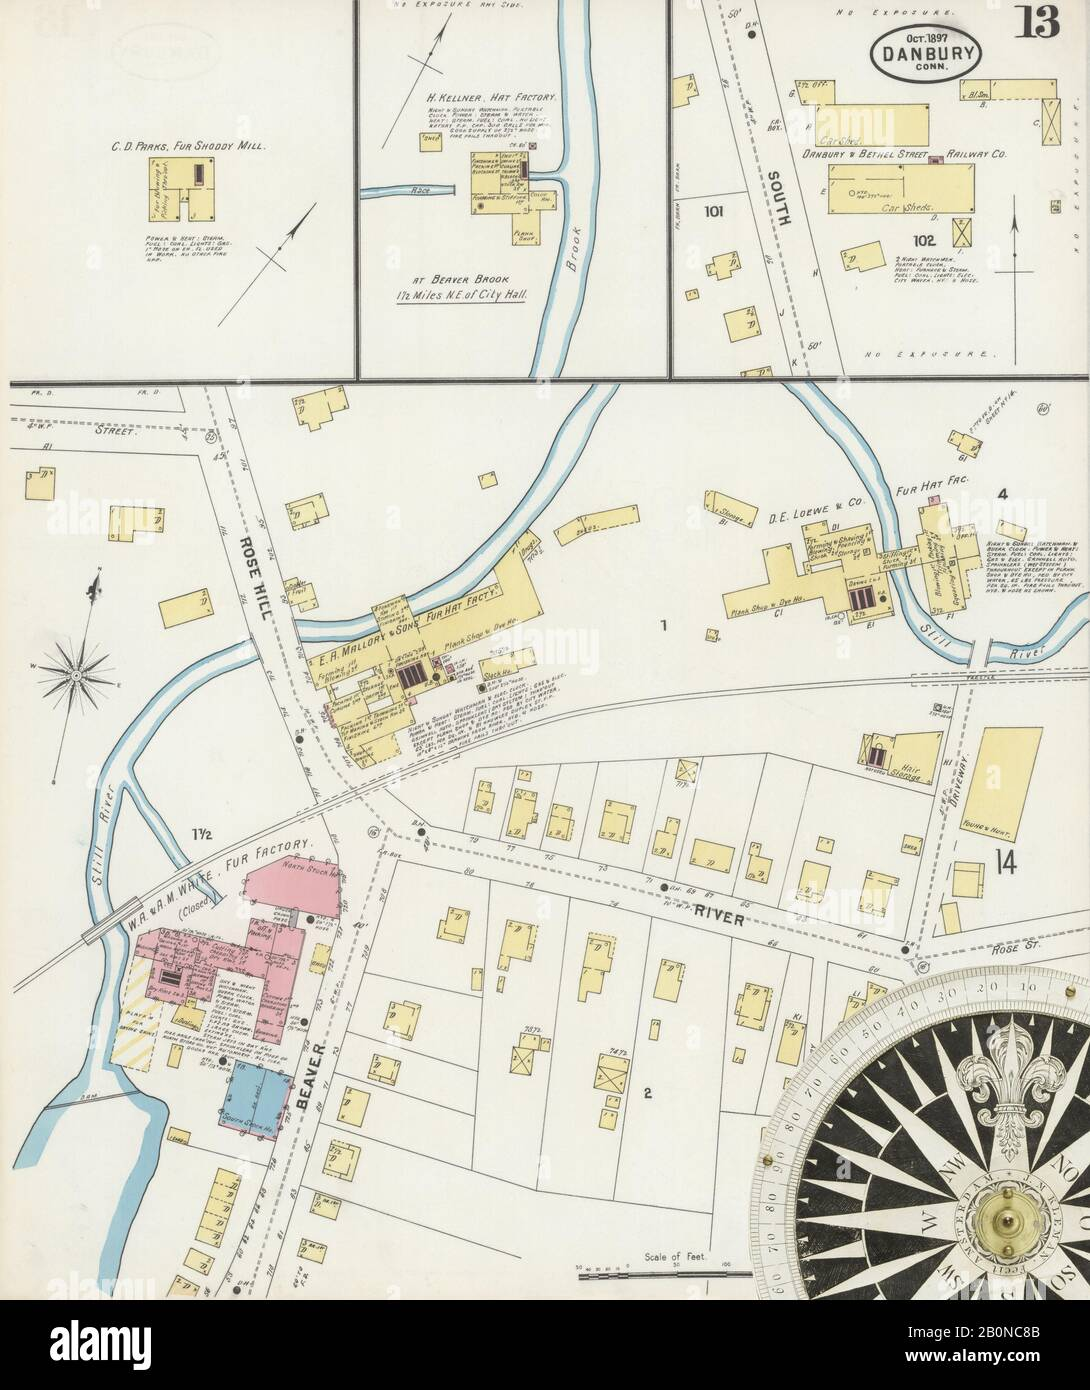 Image 13 of Sanborn Fire Insurance Map from Danbury, Fairfield County, Connecticut. Oct 1897. 19 Sheet(s), America, street map with a Nineteenth Century compass Stock Photo